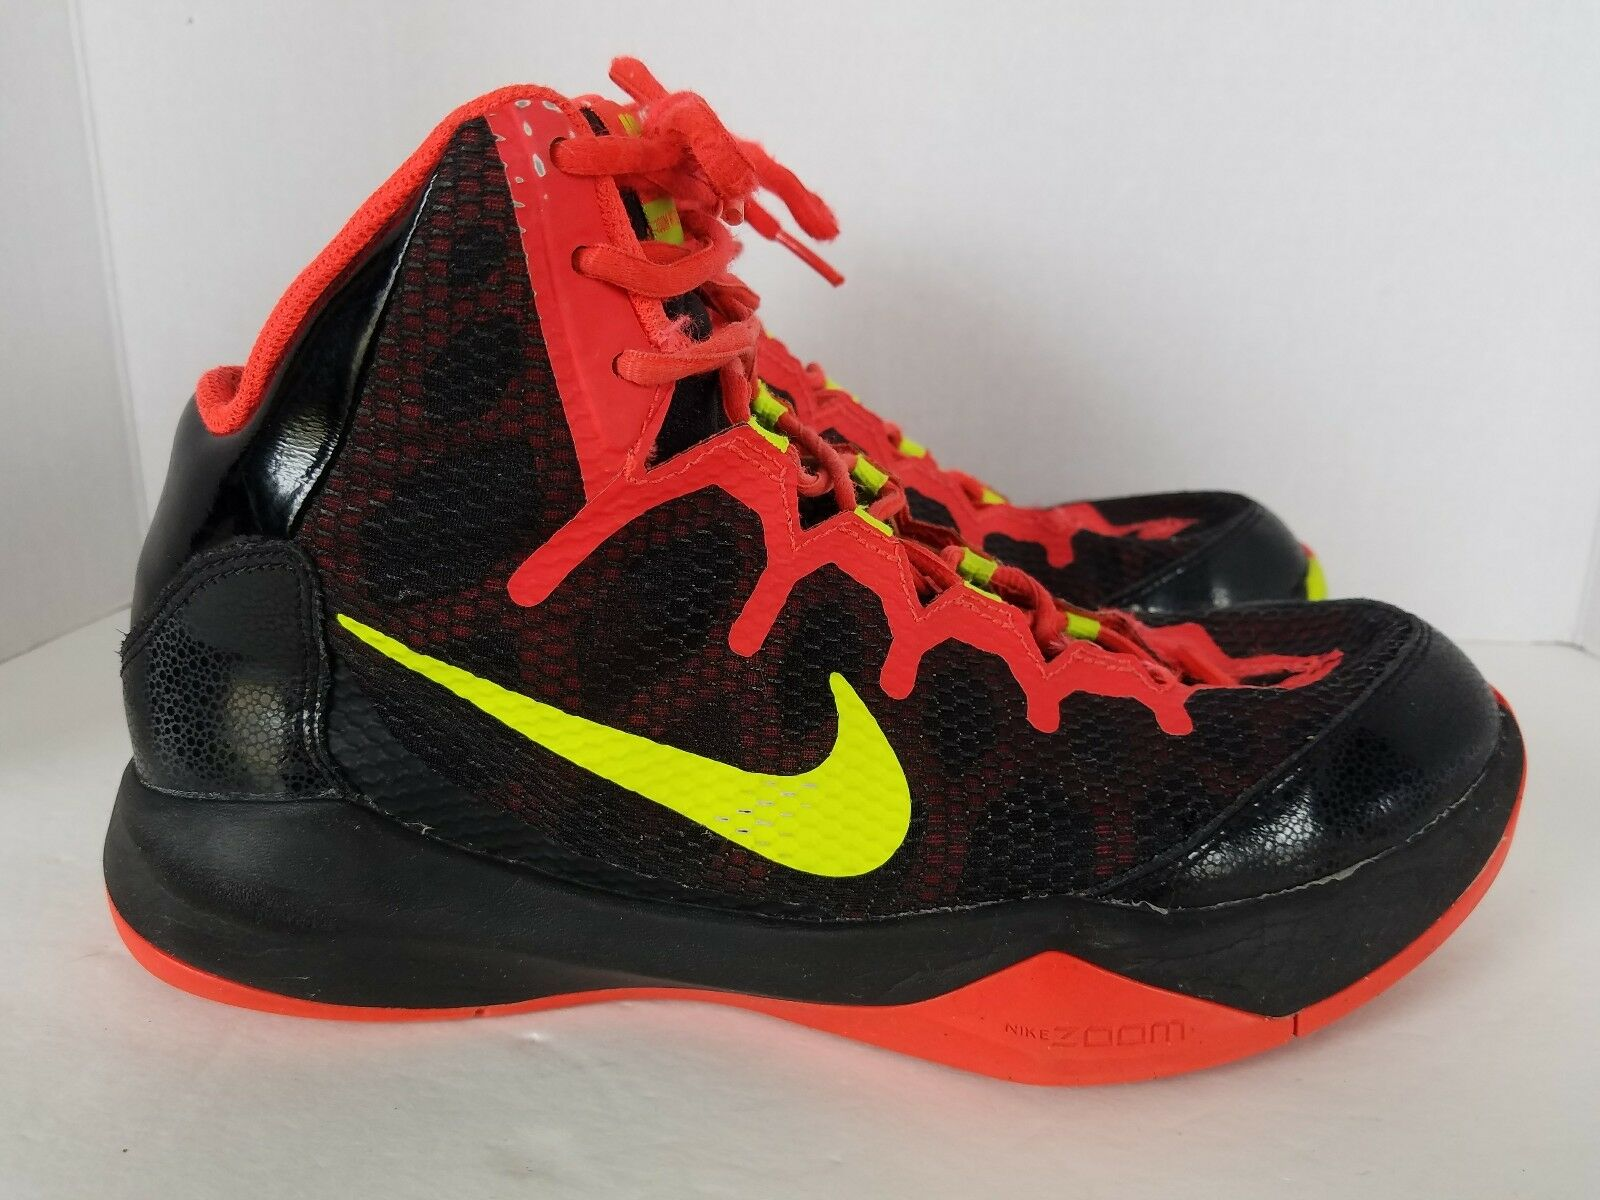 Nike ZOOM Without A Doubt Neon & Black Basketball Shoes Comfortable